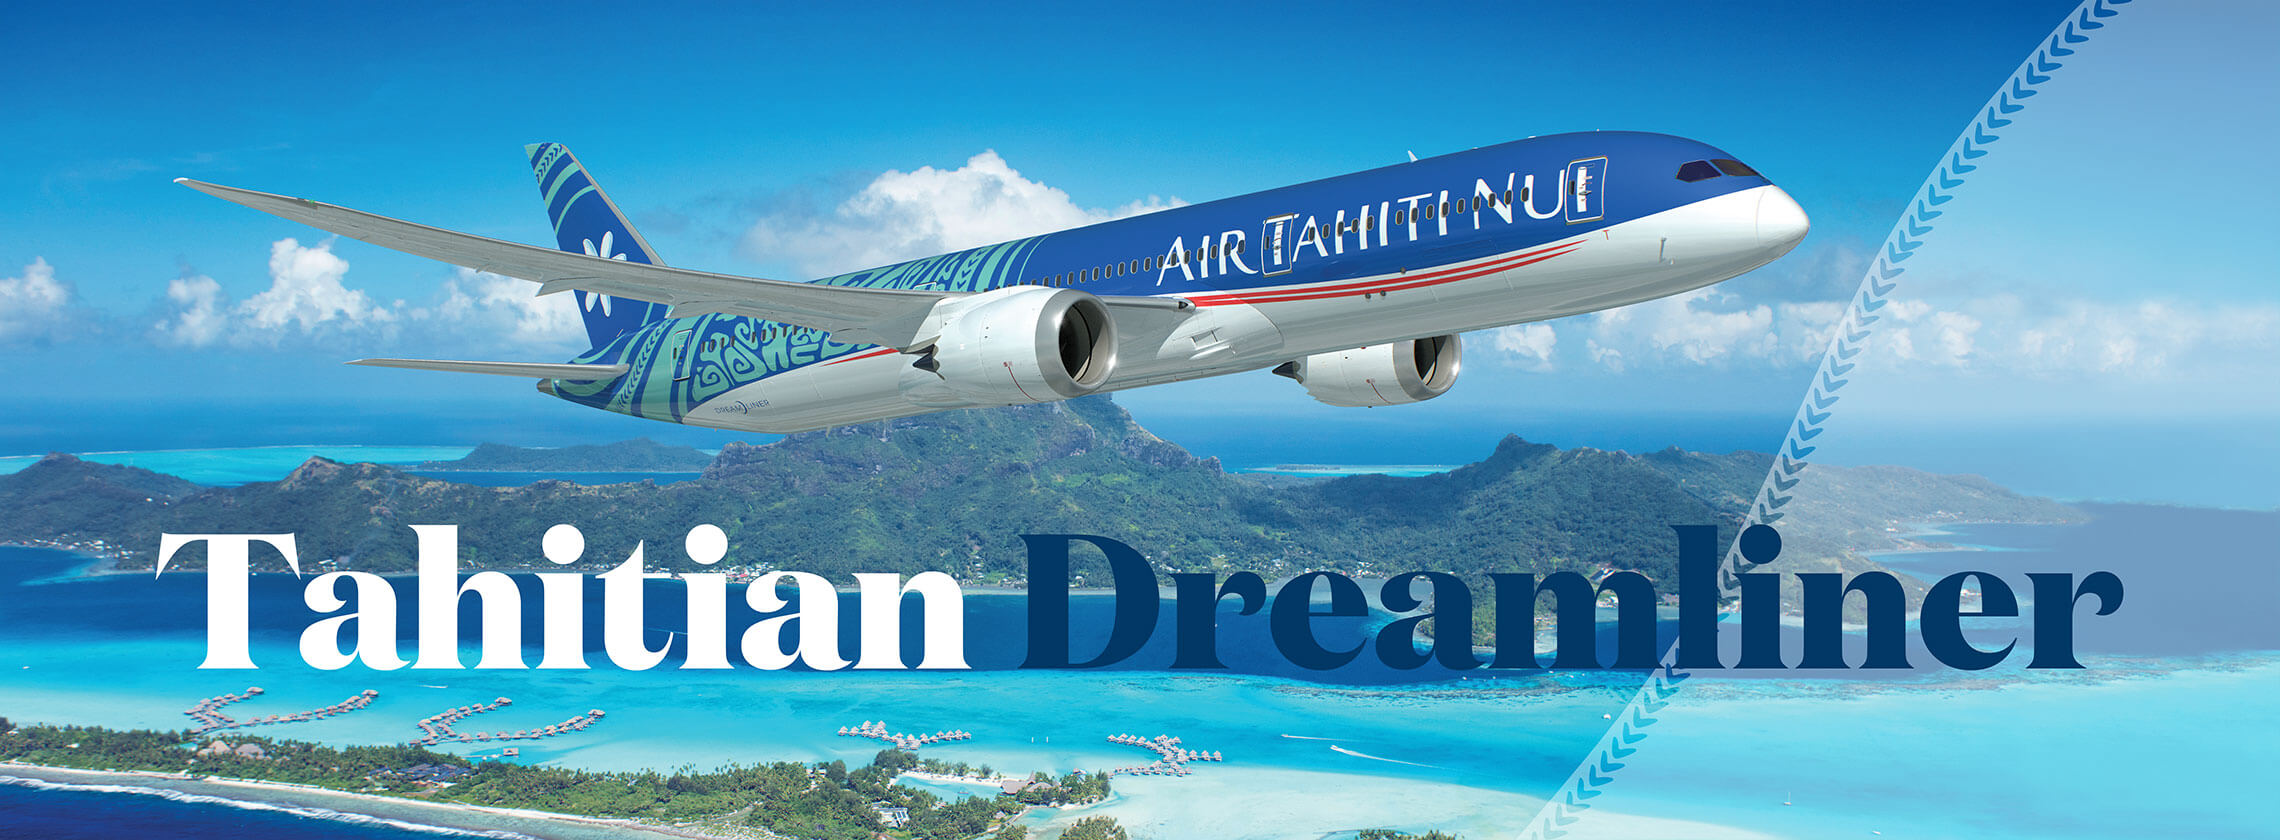 Air Tahiti Nui Tahitian Dreamliner in Flight over Tahiti